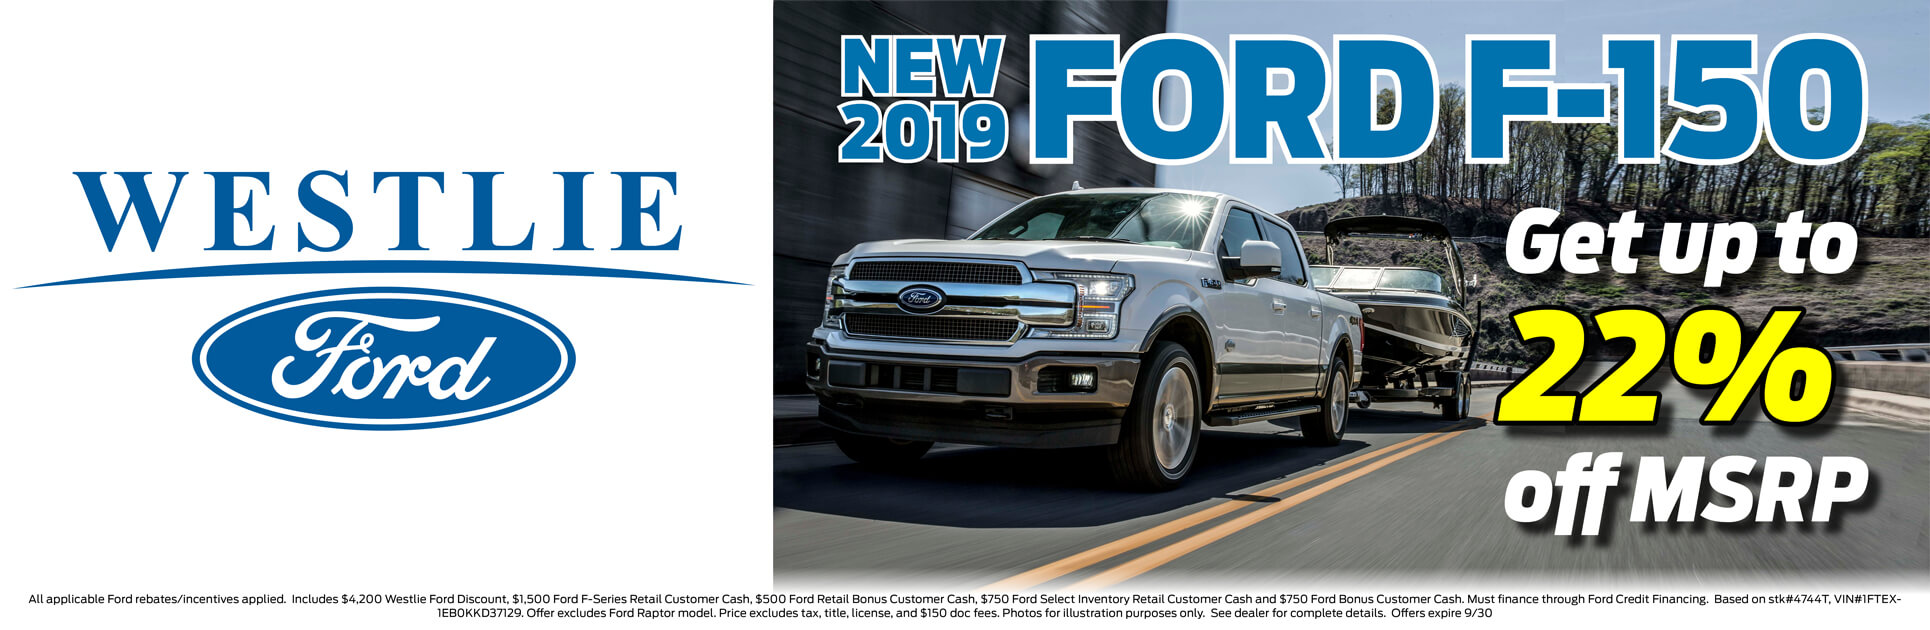 Get up to 22% off MSRP on a 2019 Ford F-150